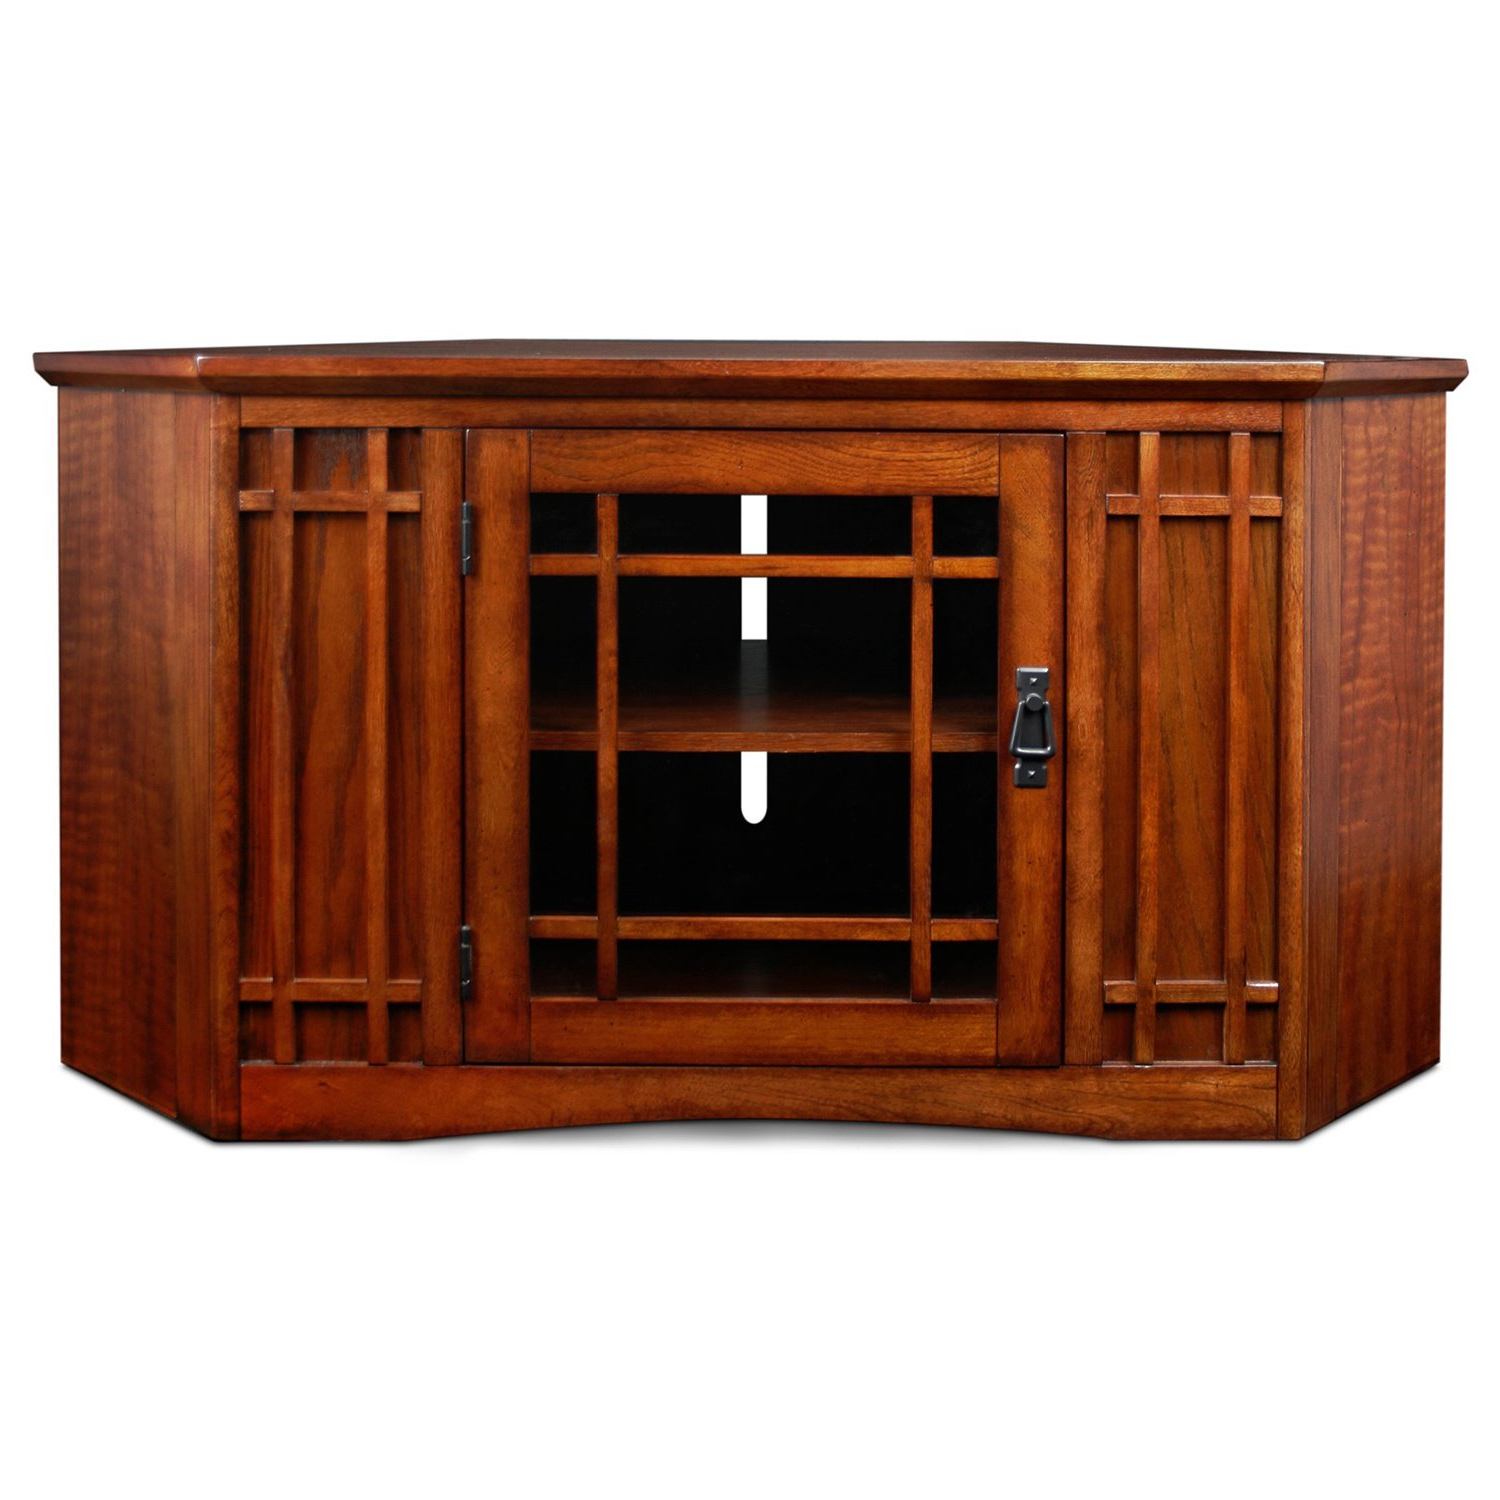 Best And Newest Shop Mission Oak 46 Inch Corner Tv Stand & Media Console – Free In Corner Oak Tv Stands (View 4 of 20)